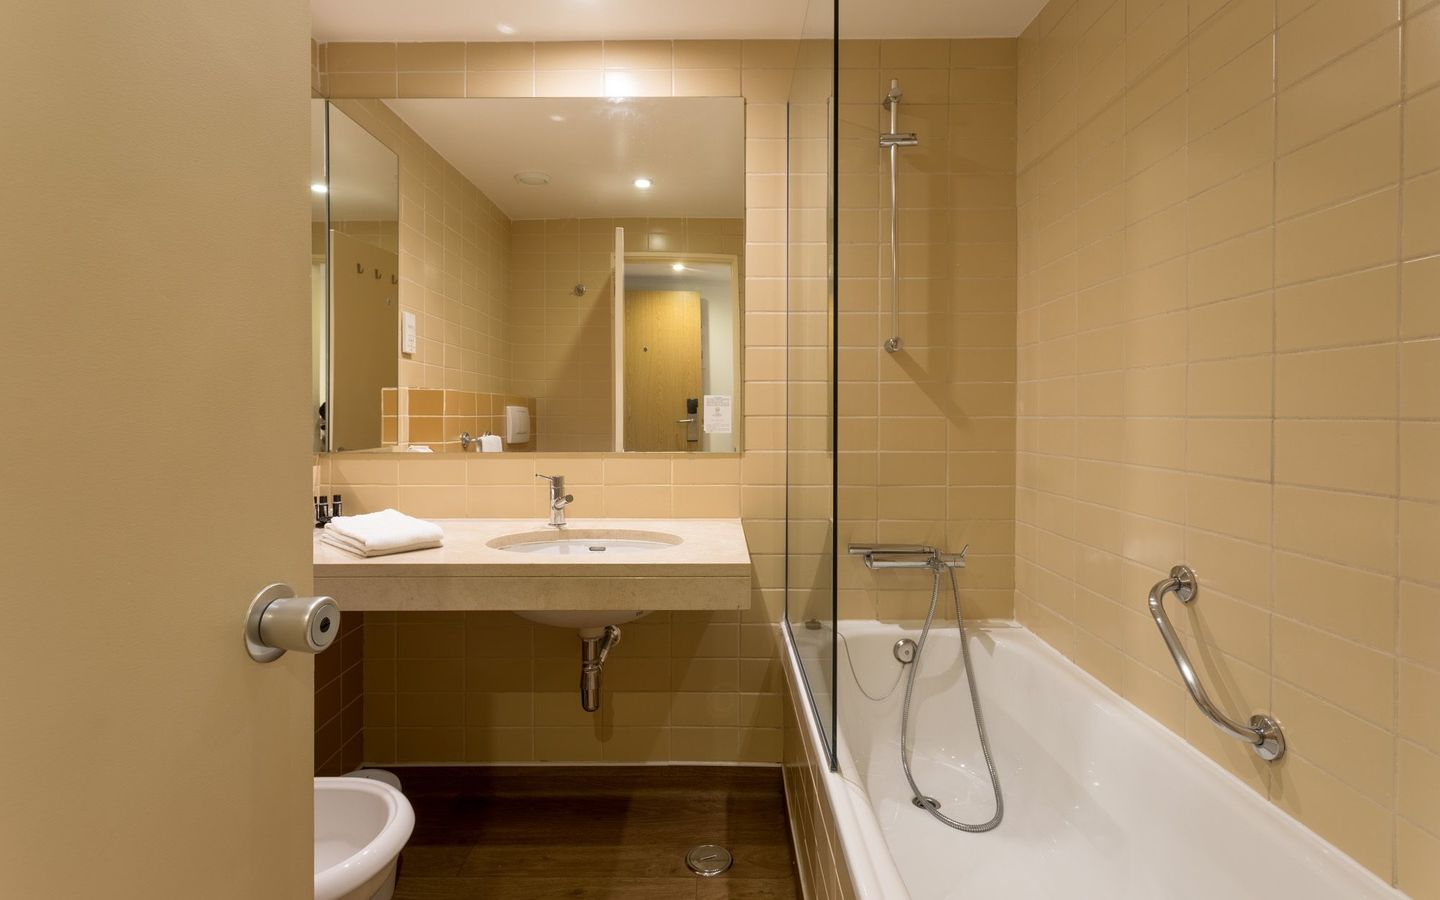 Hotel Londres - Rooms - Bathroom